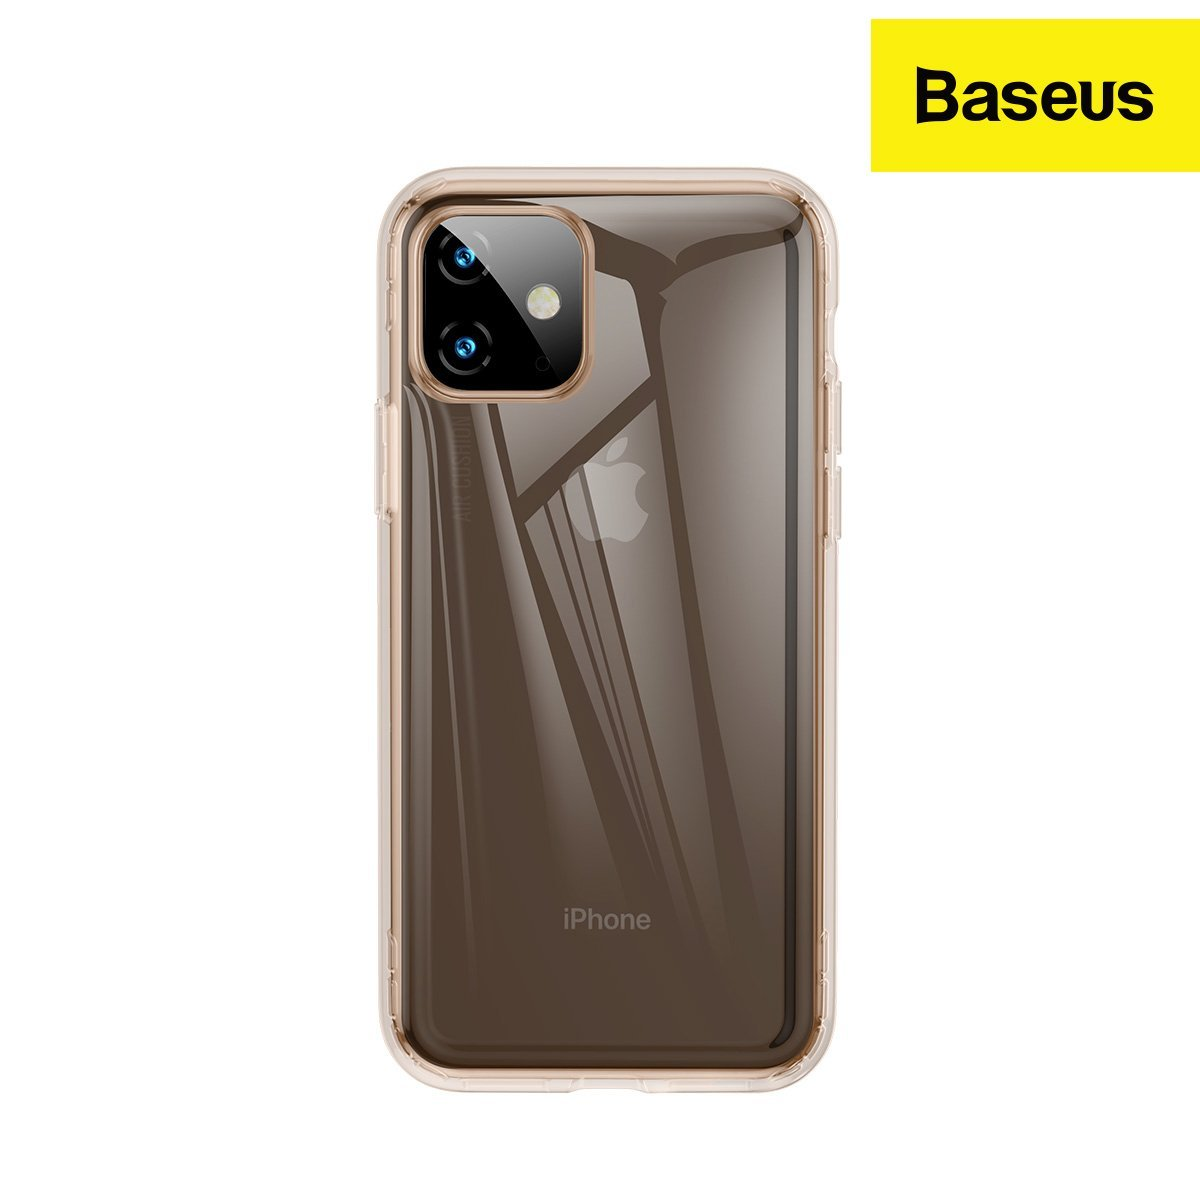 Baseus Safety Airbags Case Back Cover Designed for iPhone 11 (2019) TPU Transparent Material with 360 Degree Protection (Transparent Black)